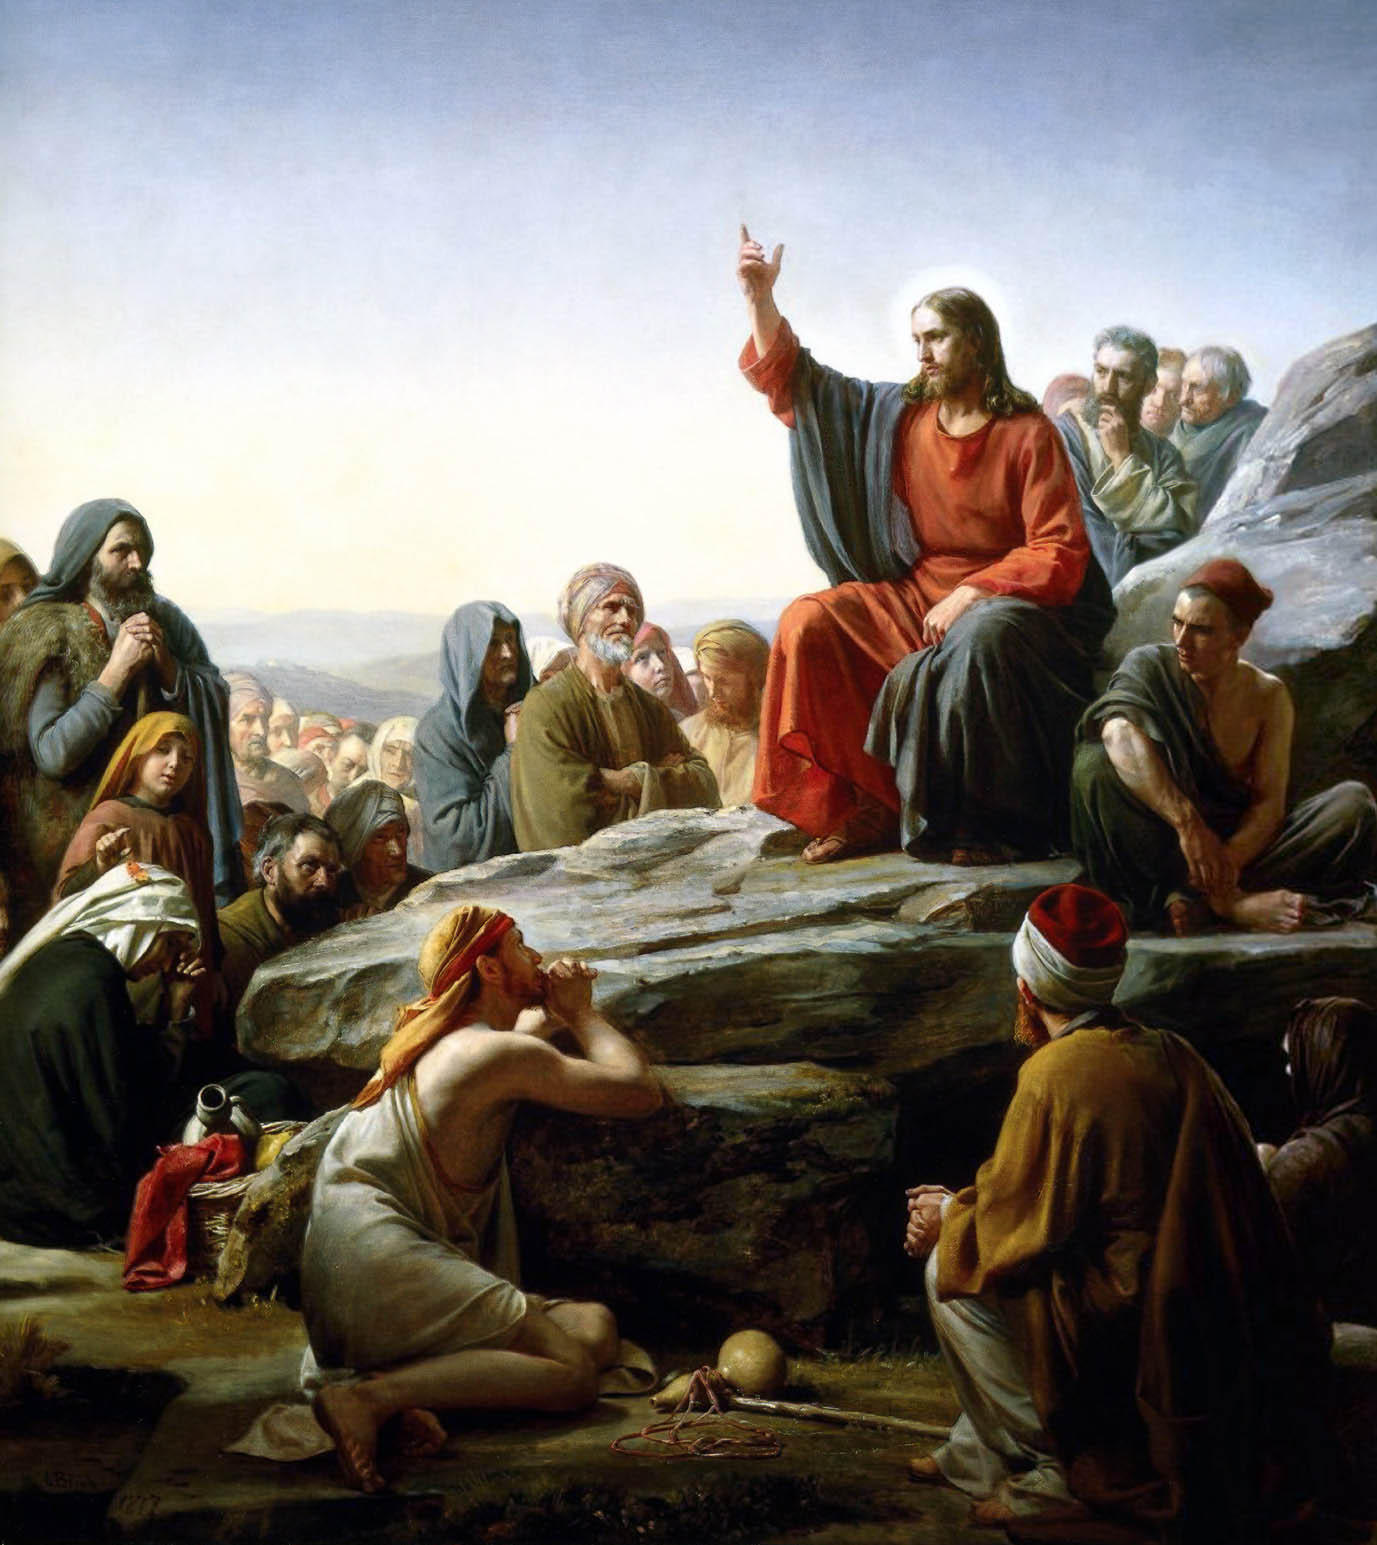 If Jesus is God, Why Did He Call Himself the Son of Man?